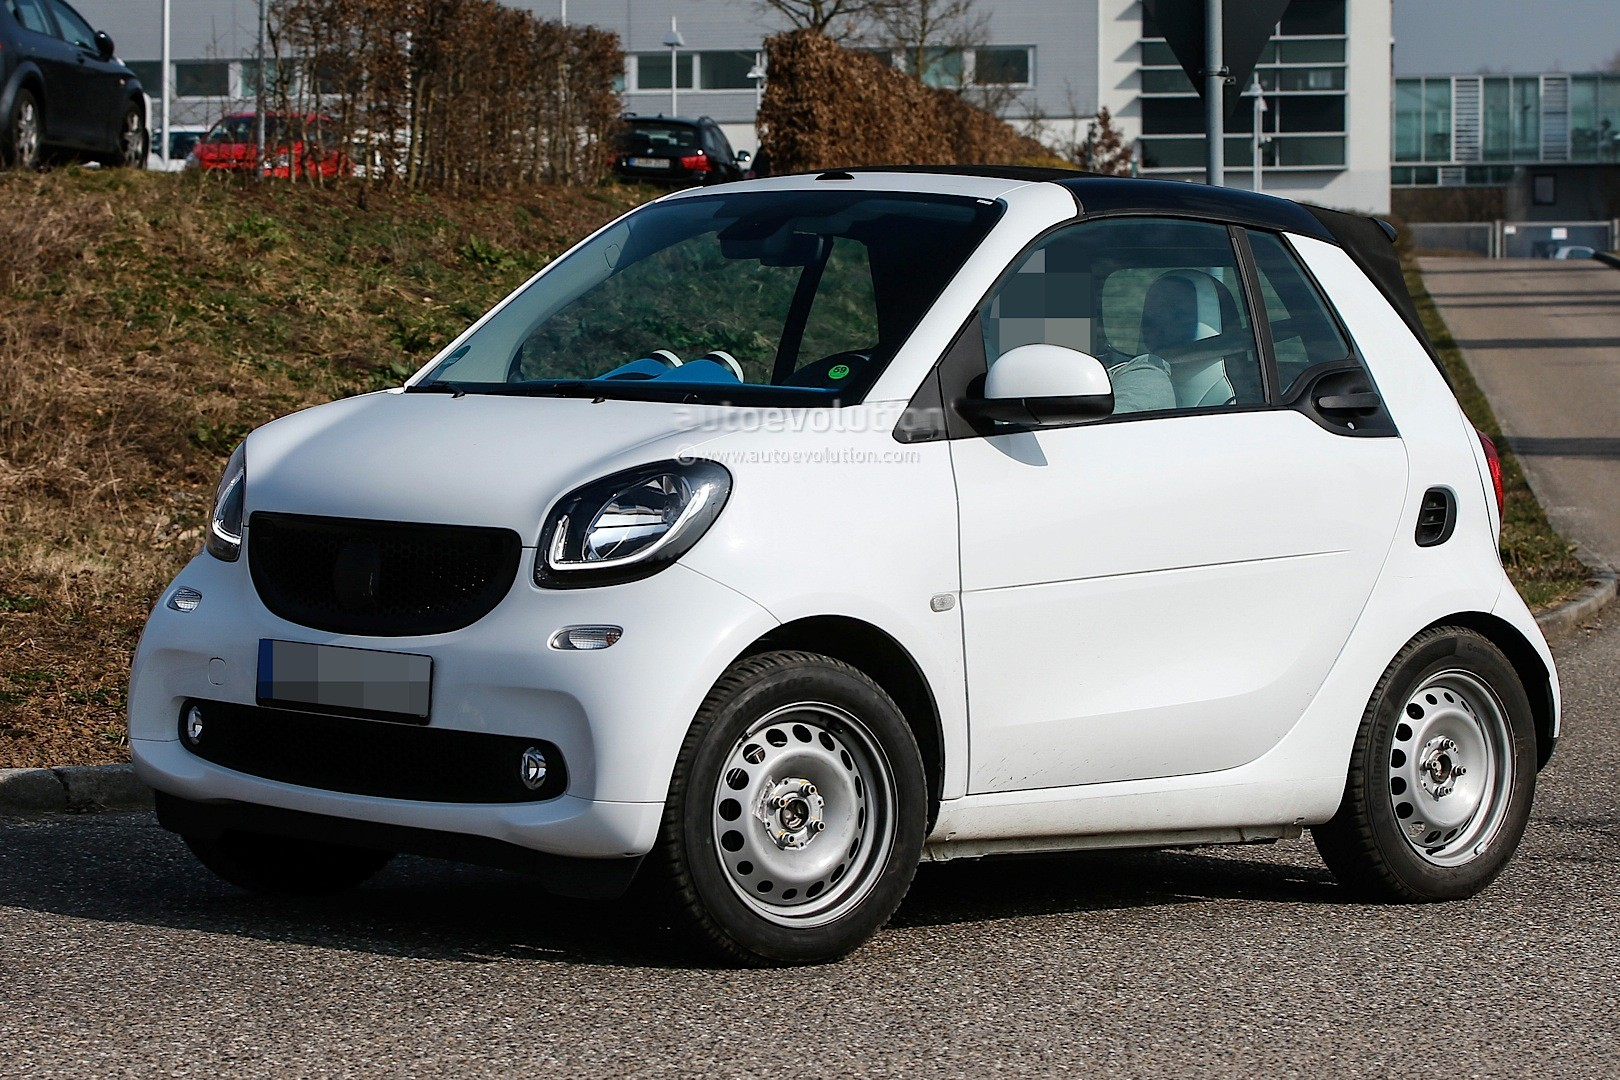 spyshots undisguised 2016 smart fortwo cabrio spied in. Black Bedroom Furniture Sets. Home Design Ideas